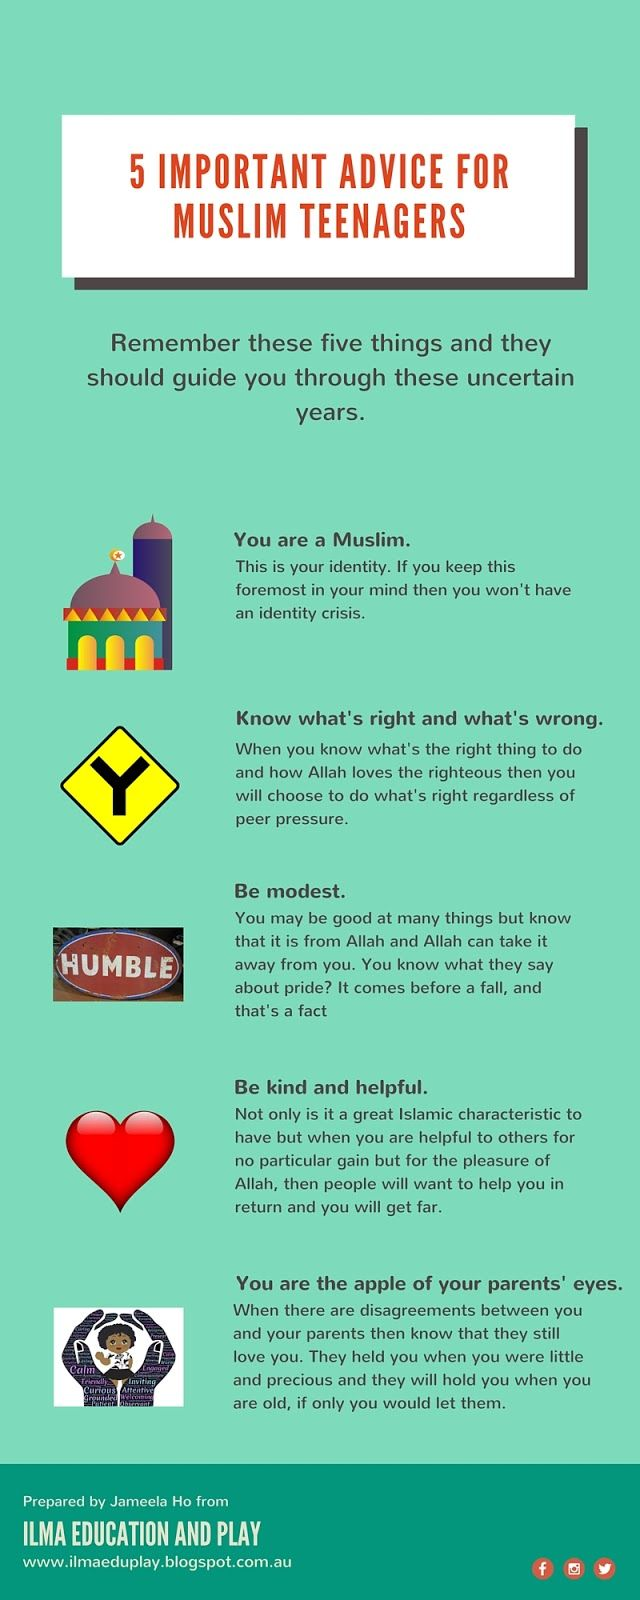 ILMA Education: 5 Important Advice for Muslim Teenagers